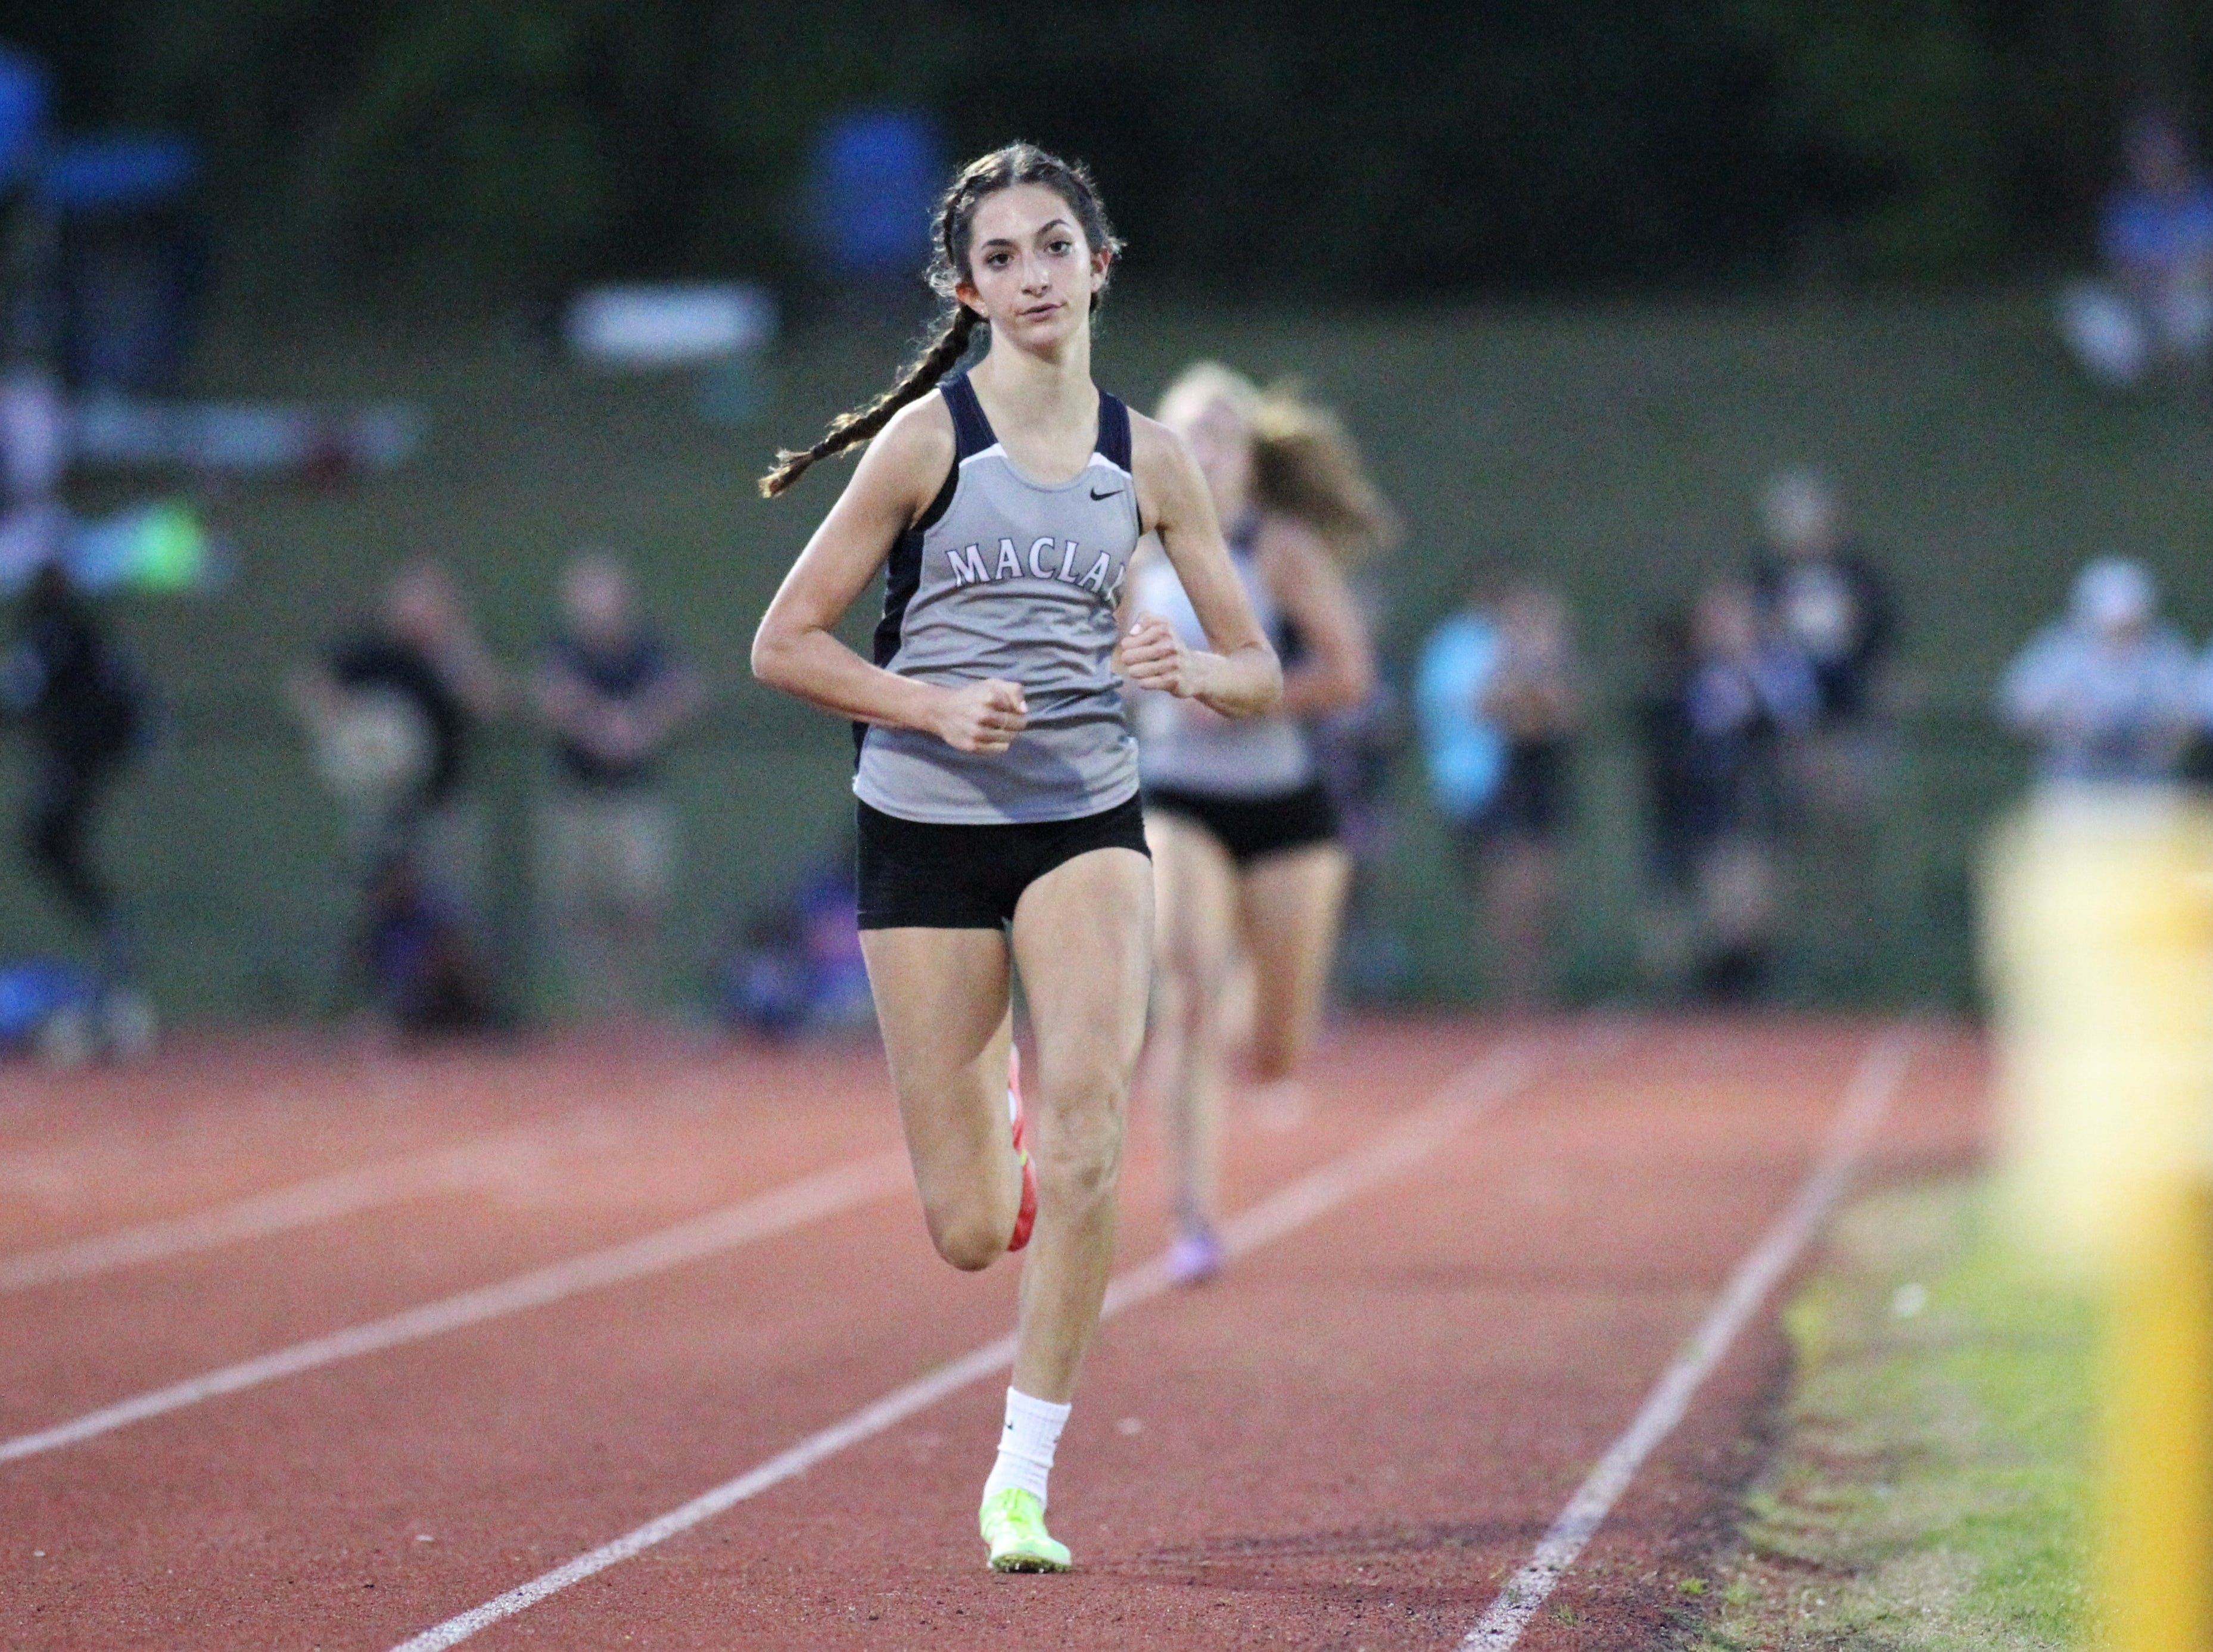 Maclay eighth-grader Ella Porcher races during the District 3-1A and 2-2A track and field meets at Florida High on Saturday, April 13, 2019.